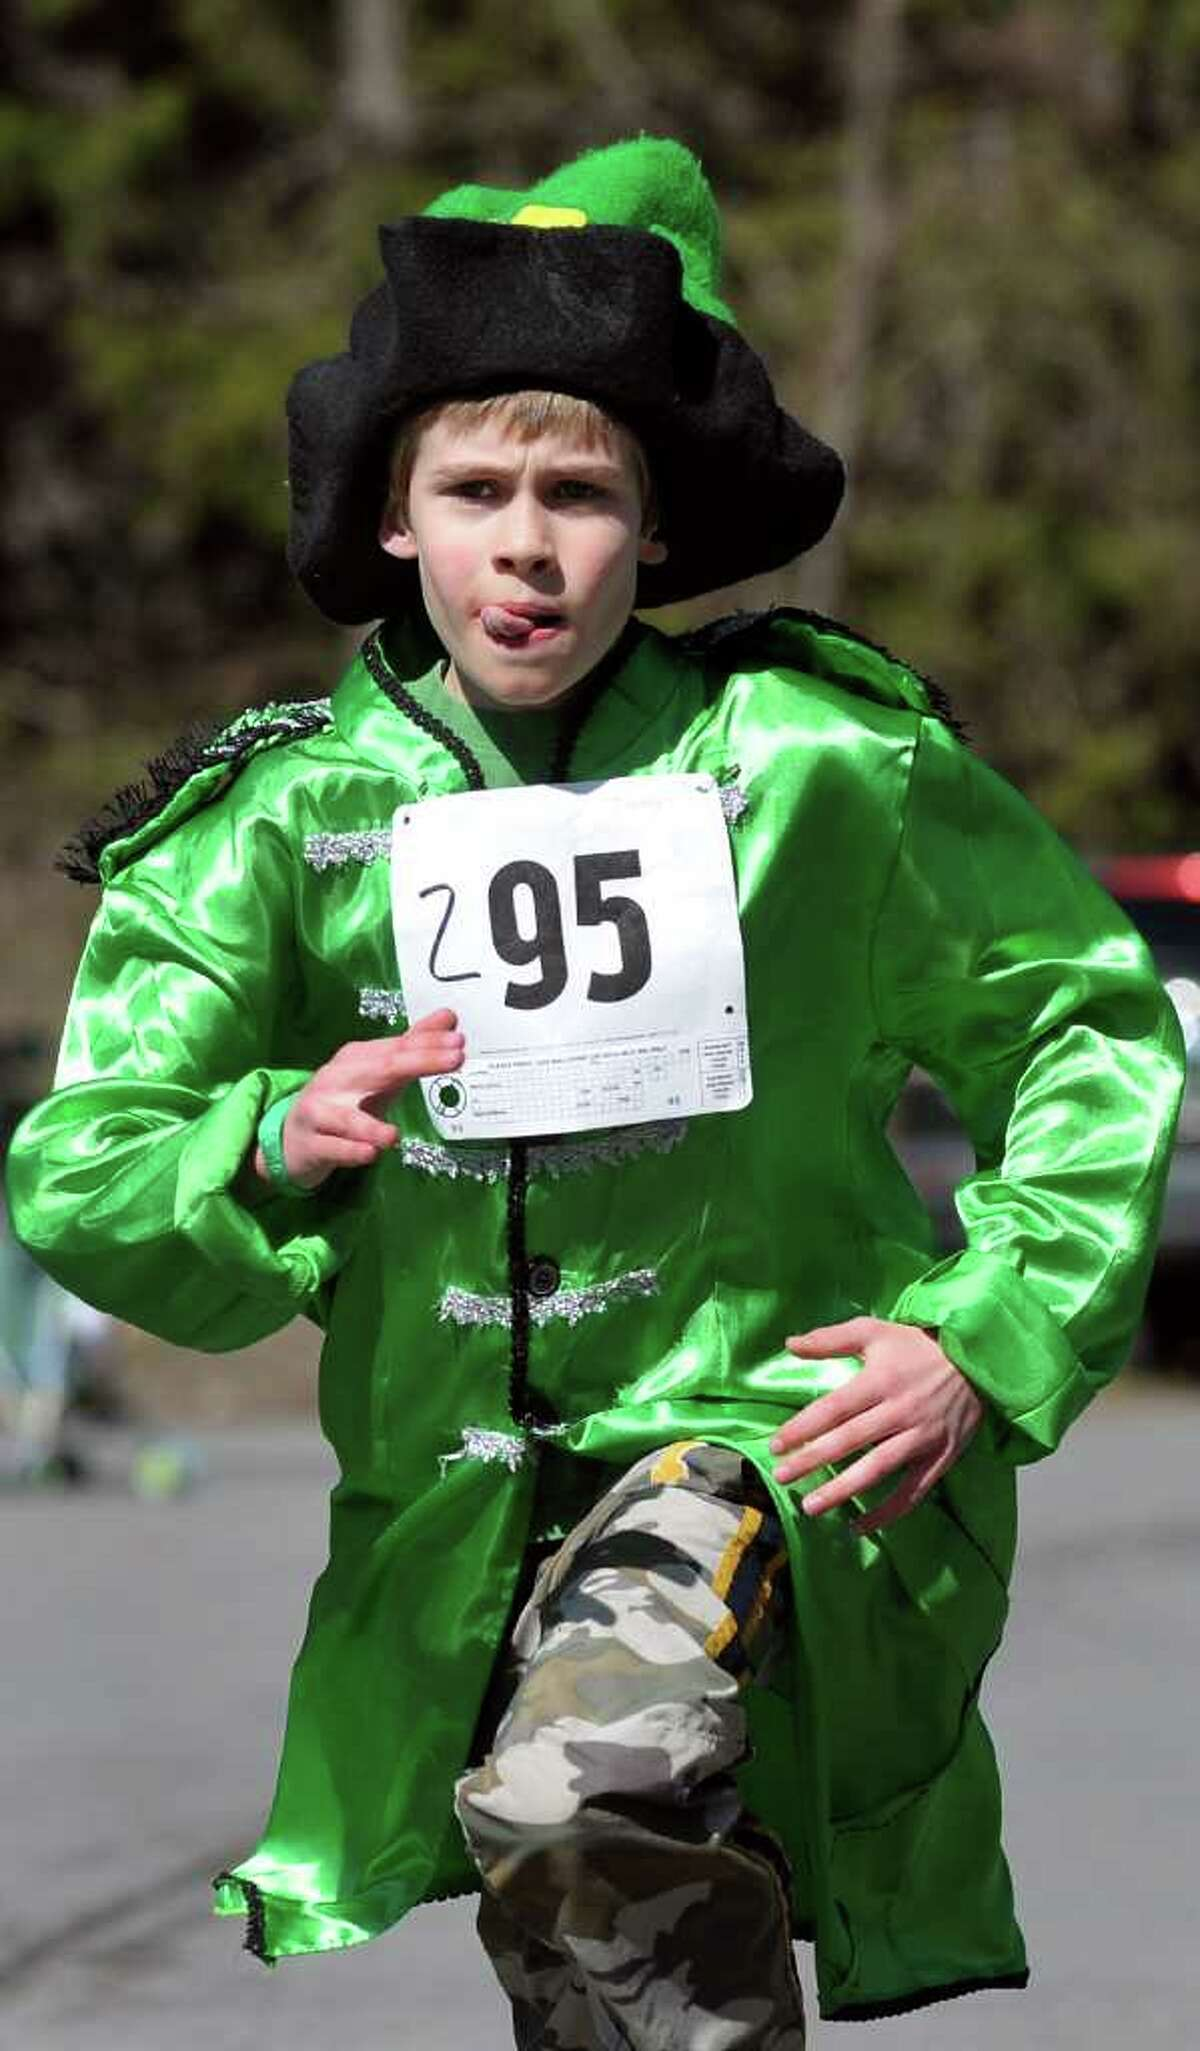 Dressed in a festive fashion, Charlie Dunigan, 9, of Averill Park runs the 1K Shamrock Shuffle for kids on St. Patrick's Day on Saturday, March 17, 2012, in Averill Park, N.Y. (Cindy Schultz / Times Union)